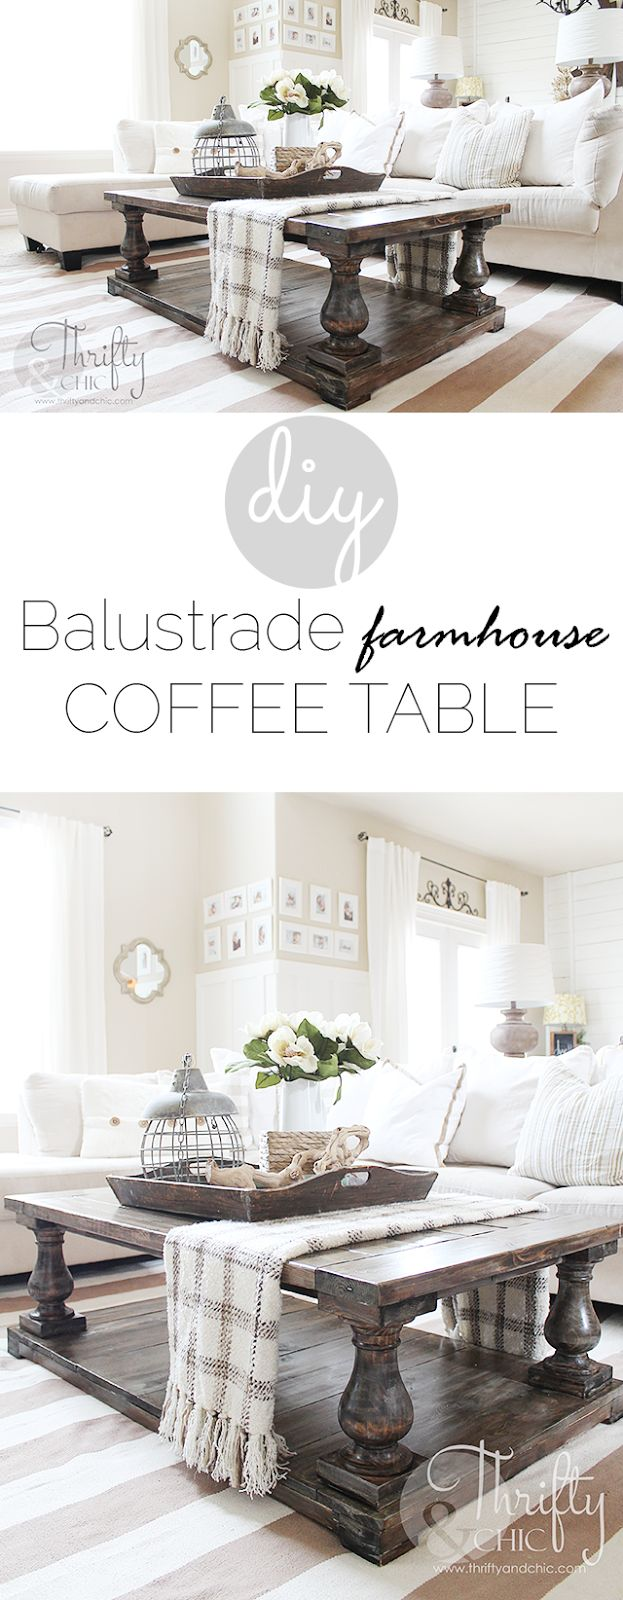 1140 best home: farmhouse meets coastal cottage inspiration images